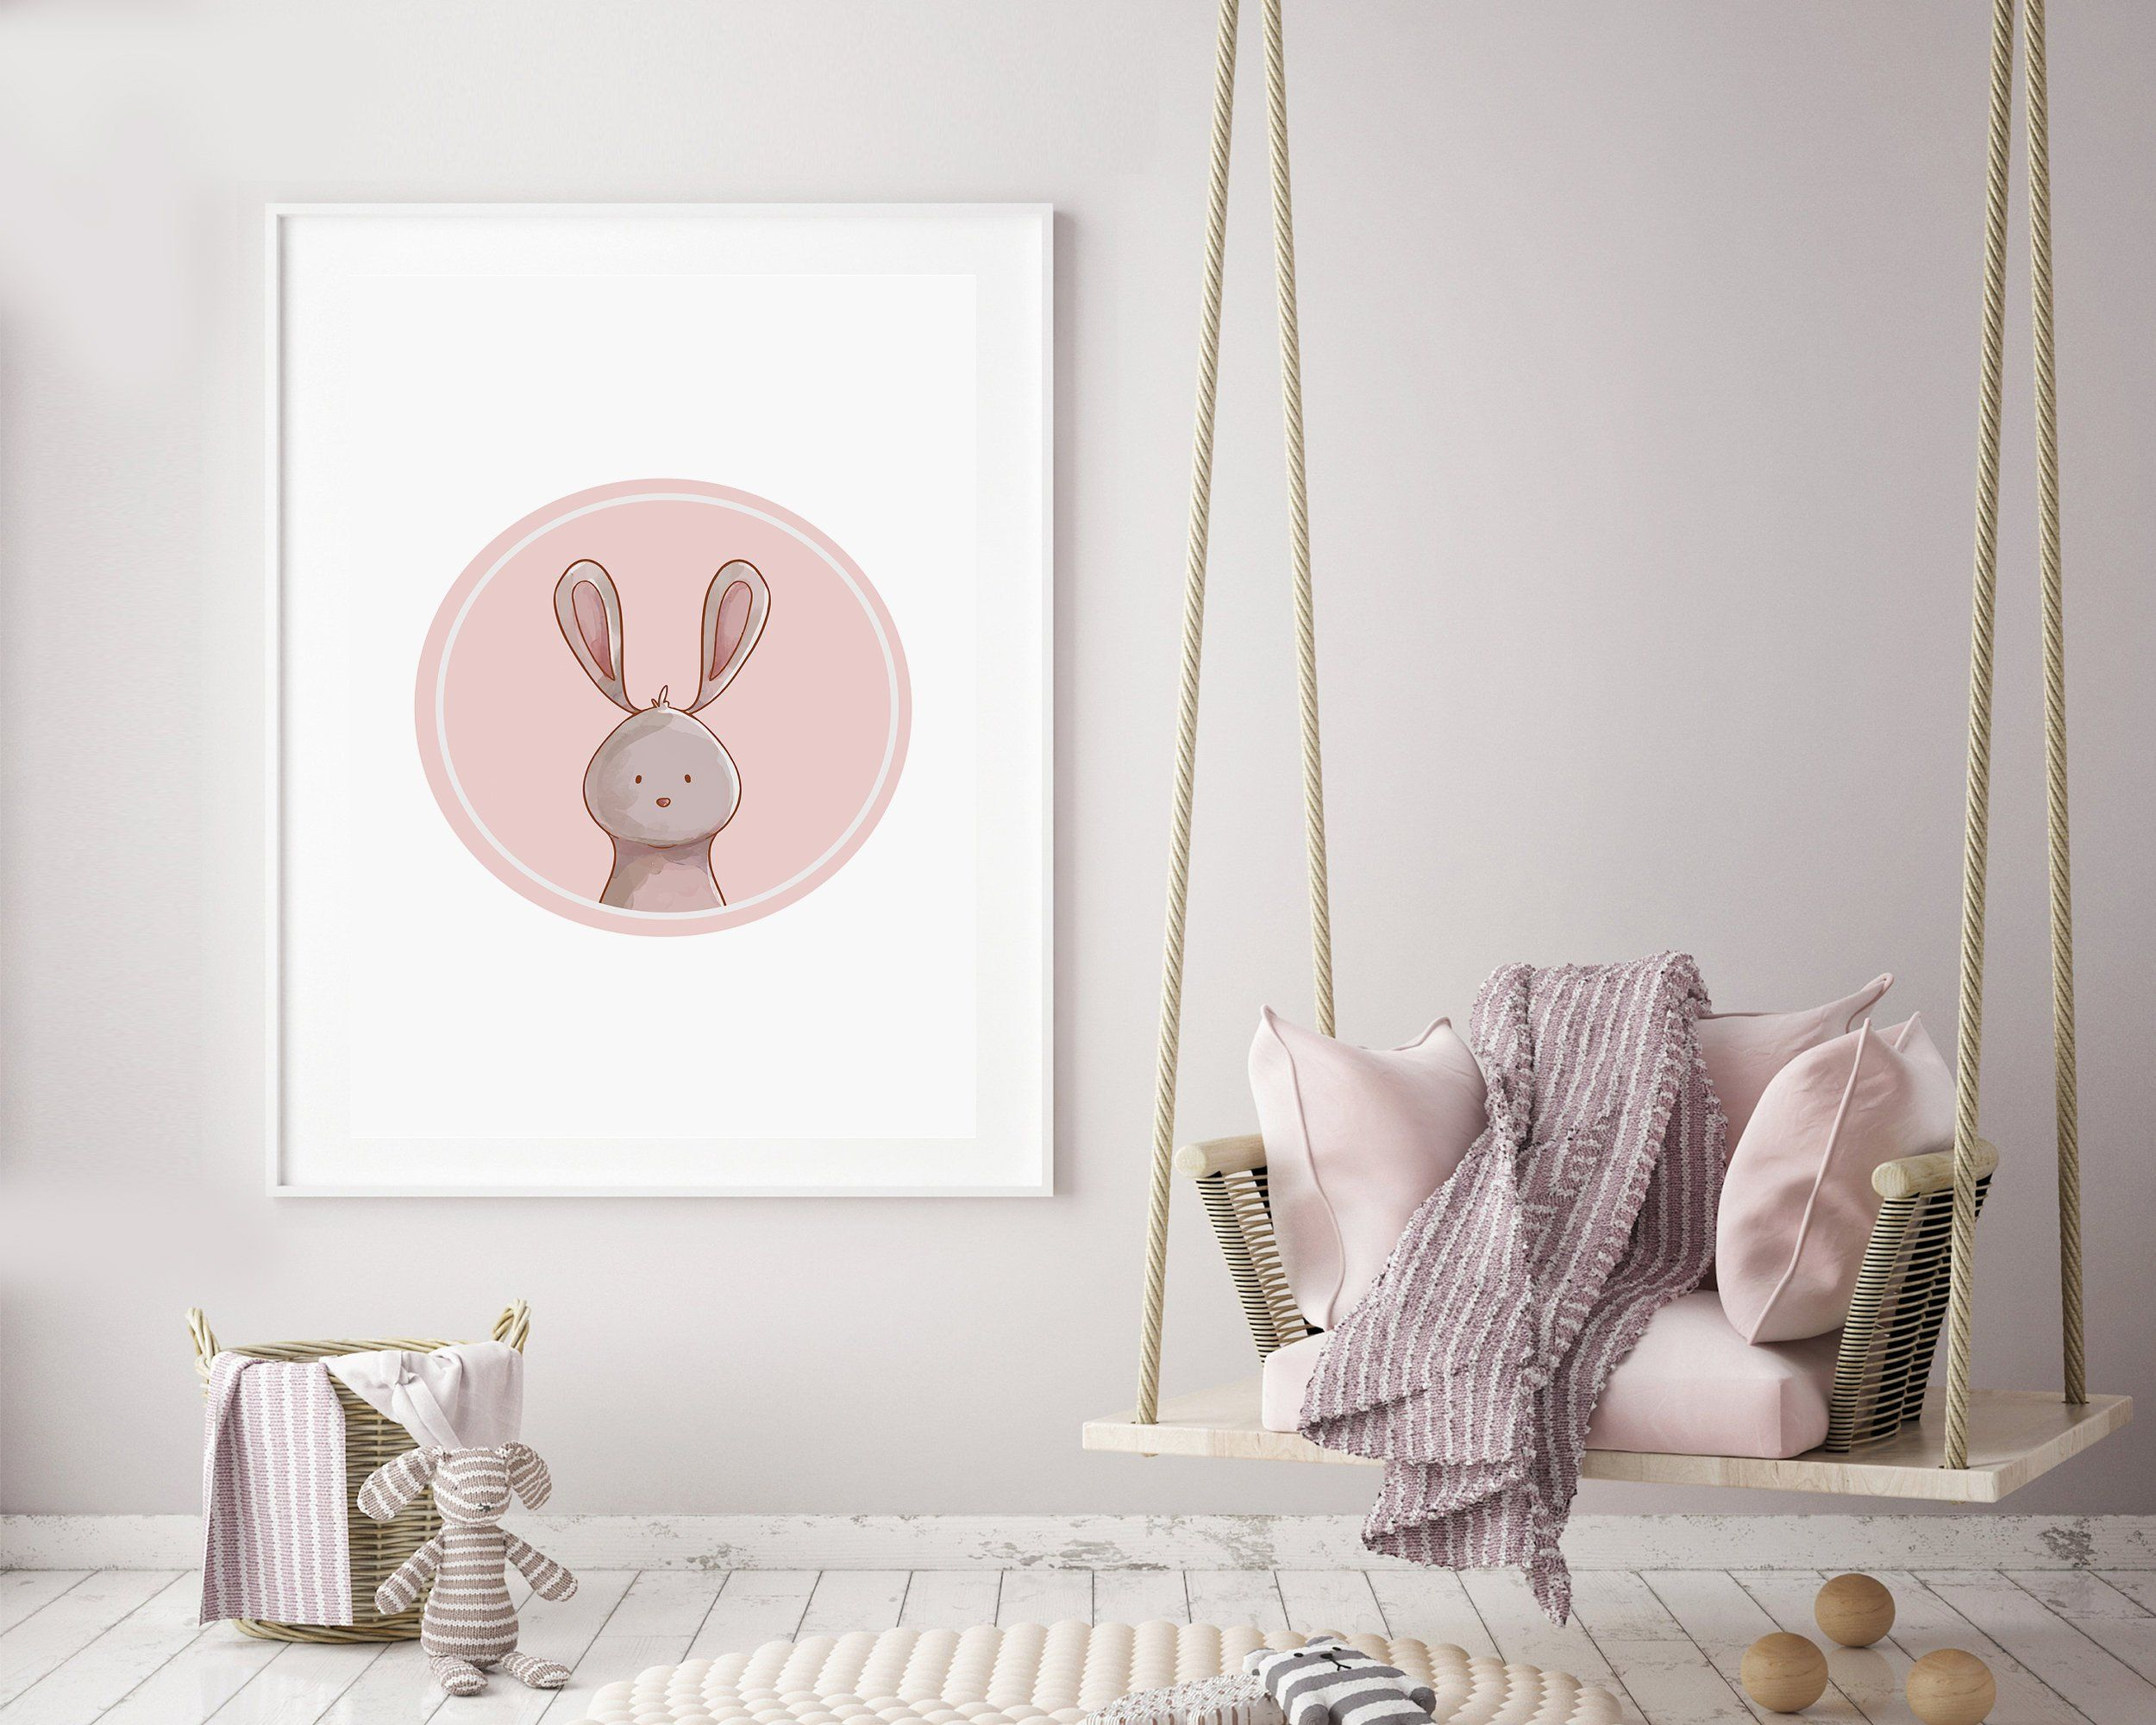 Rabbit Wall Art - Pink Rabbit Print - Nursery Print